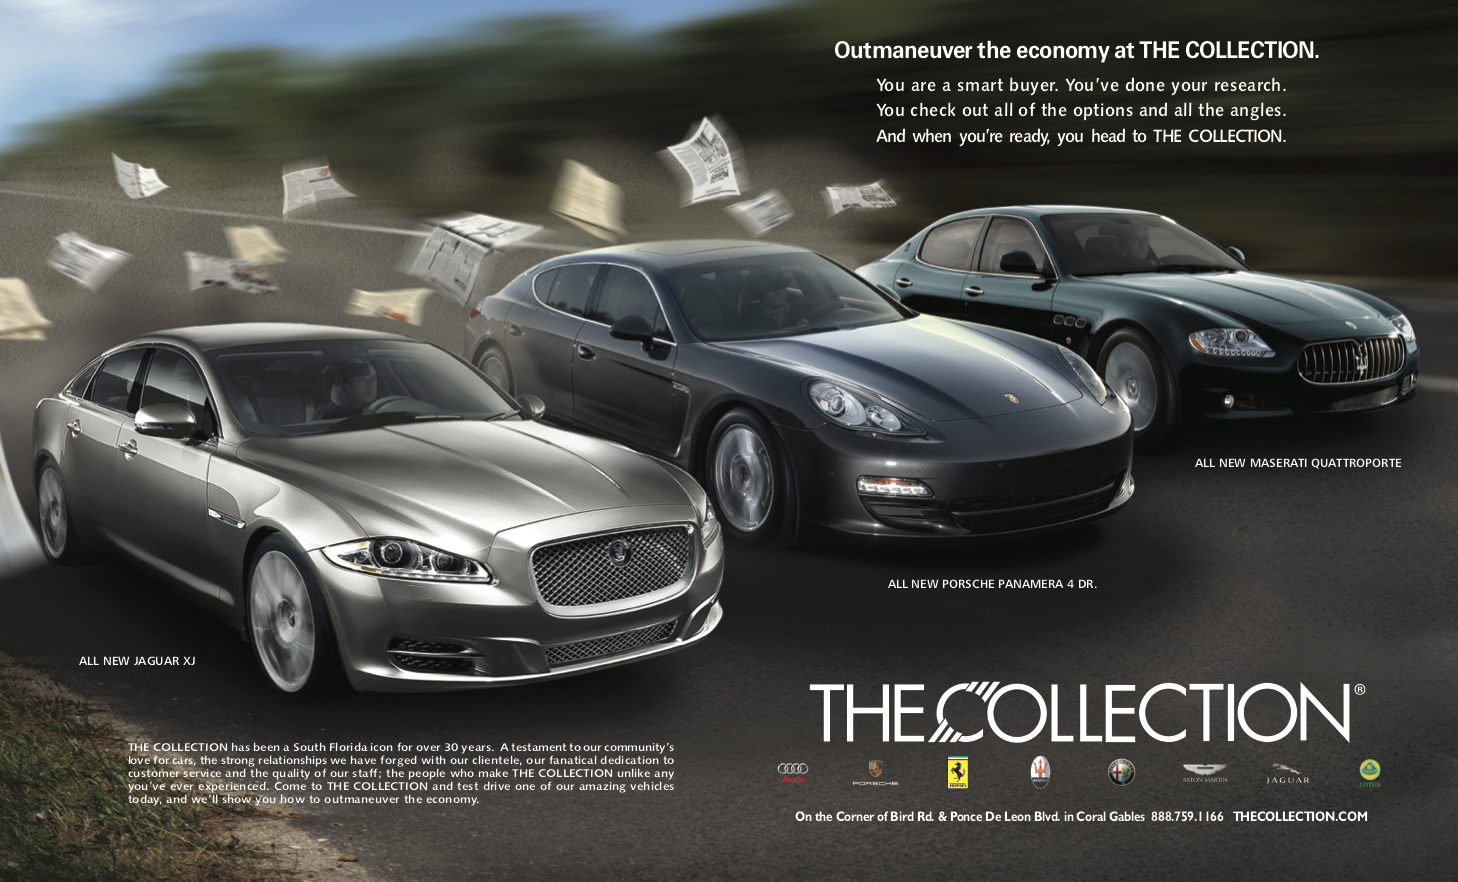 Outmaneuver The Economy Ad Campaign